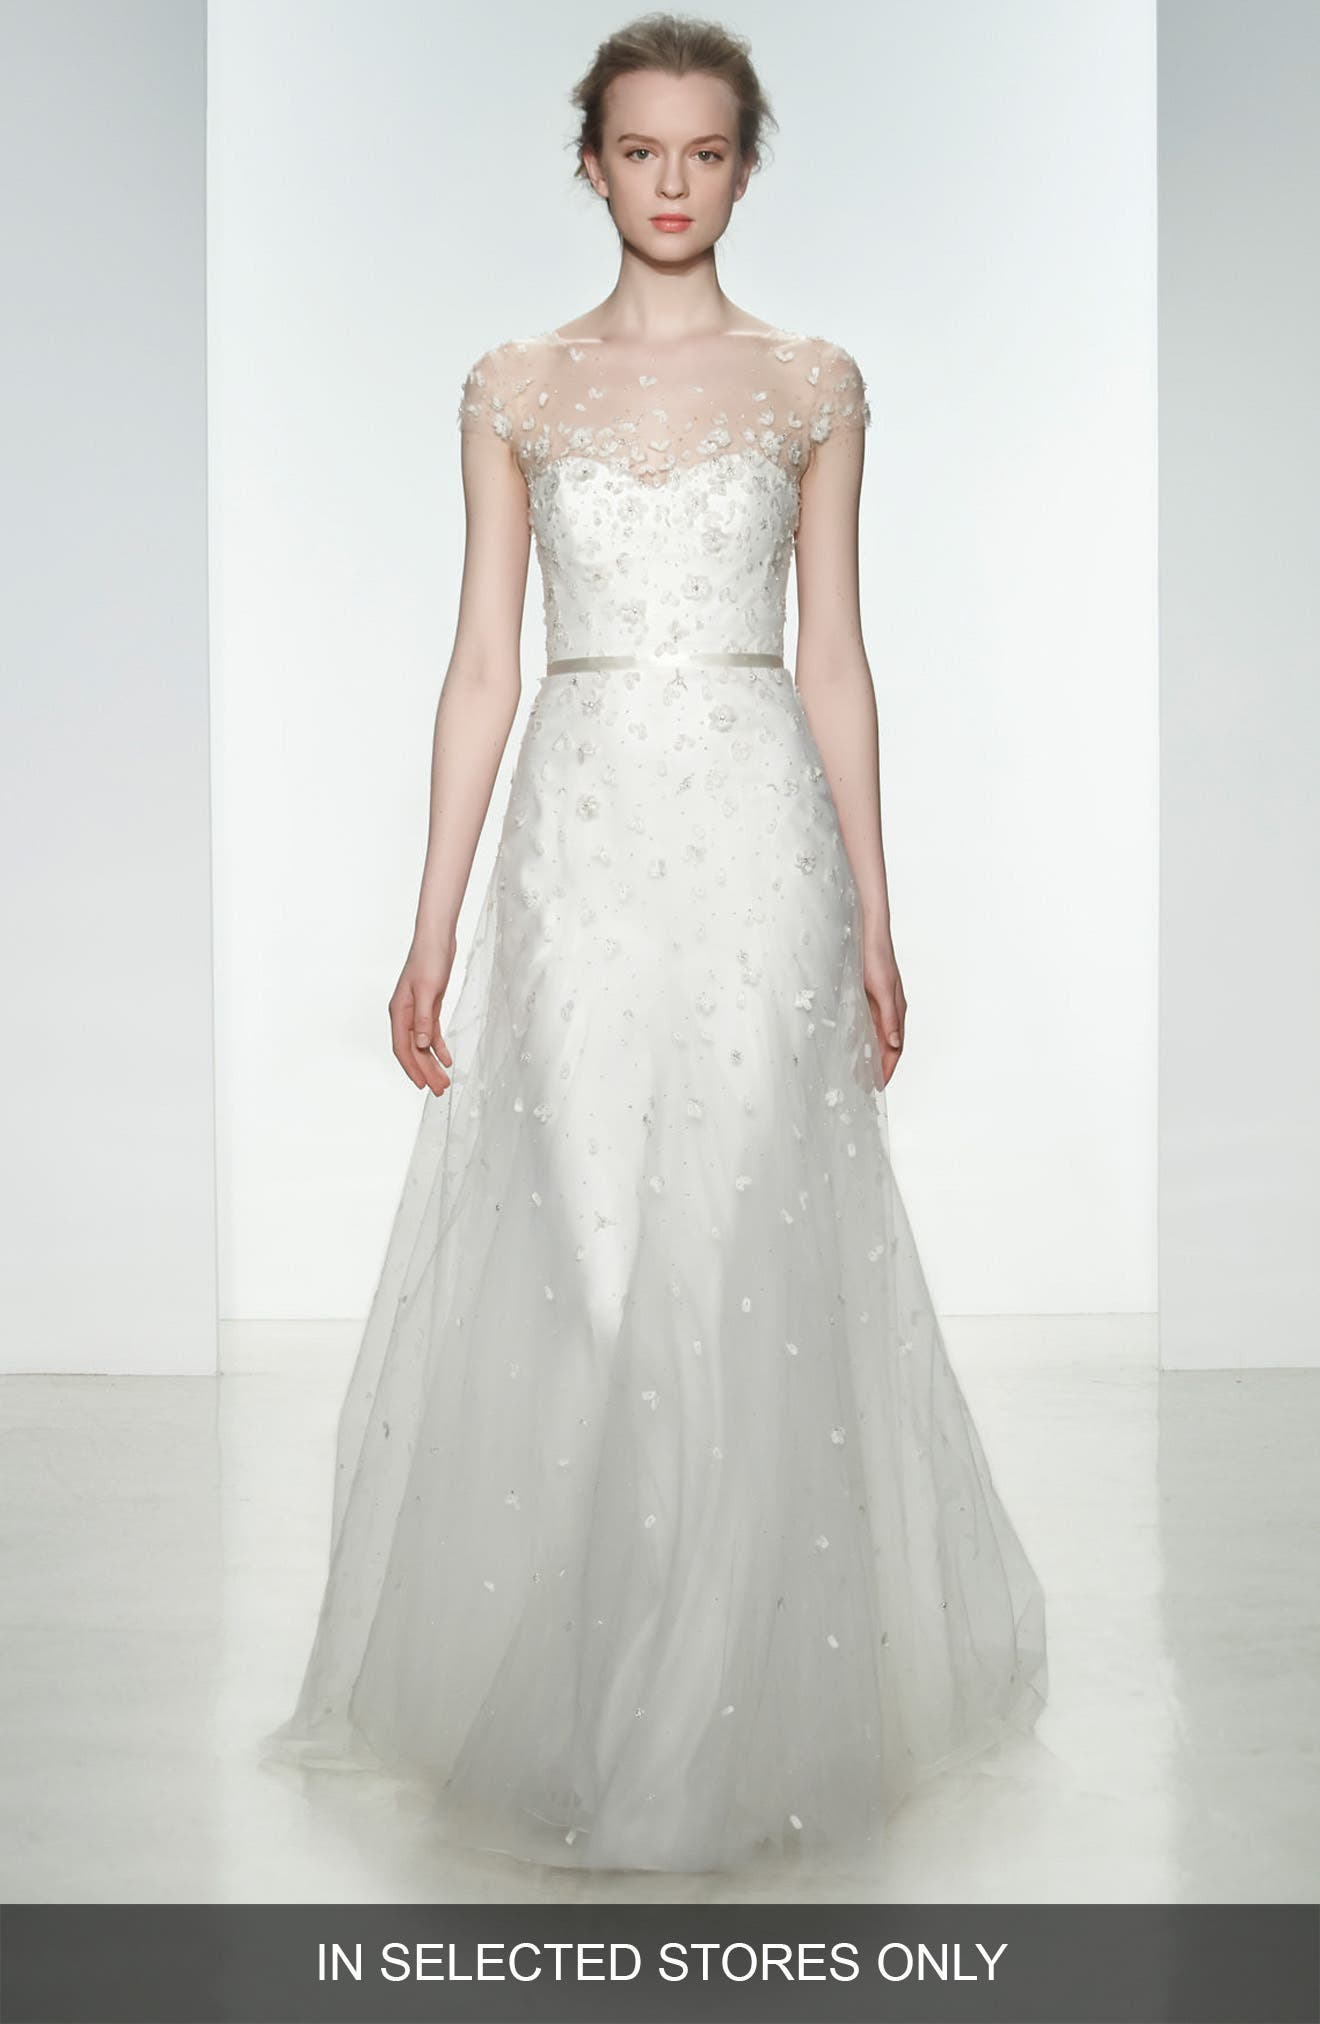 Main Image - Christos Bridal Ellie Embellished Illusion Neck Tulle Gown